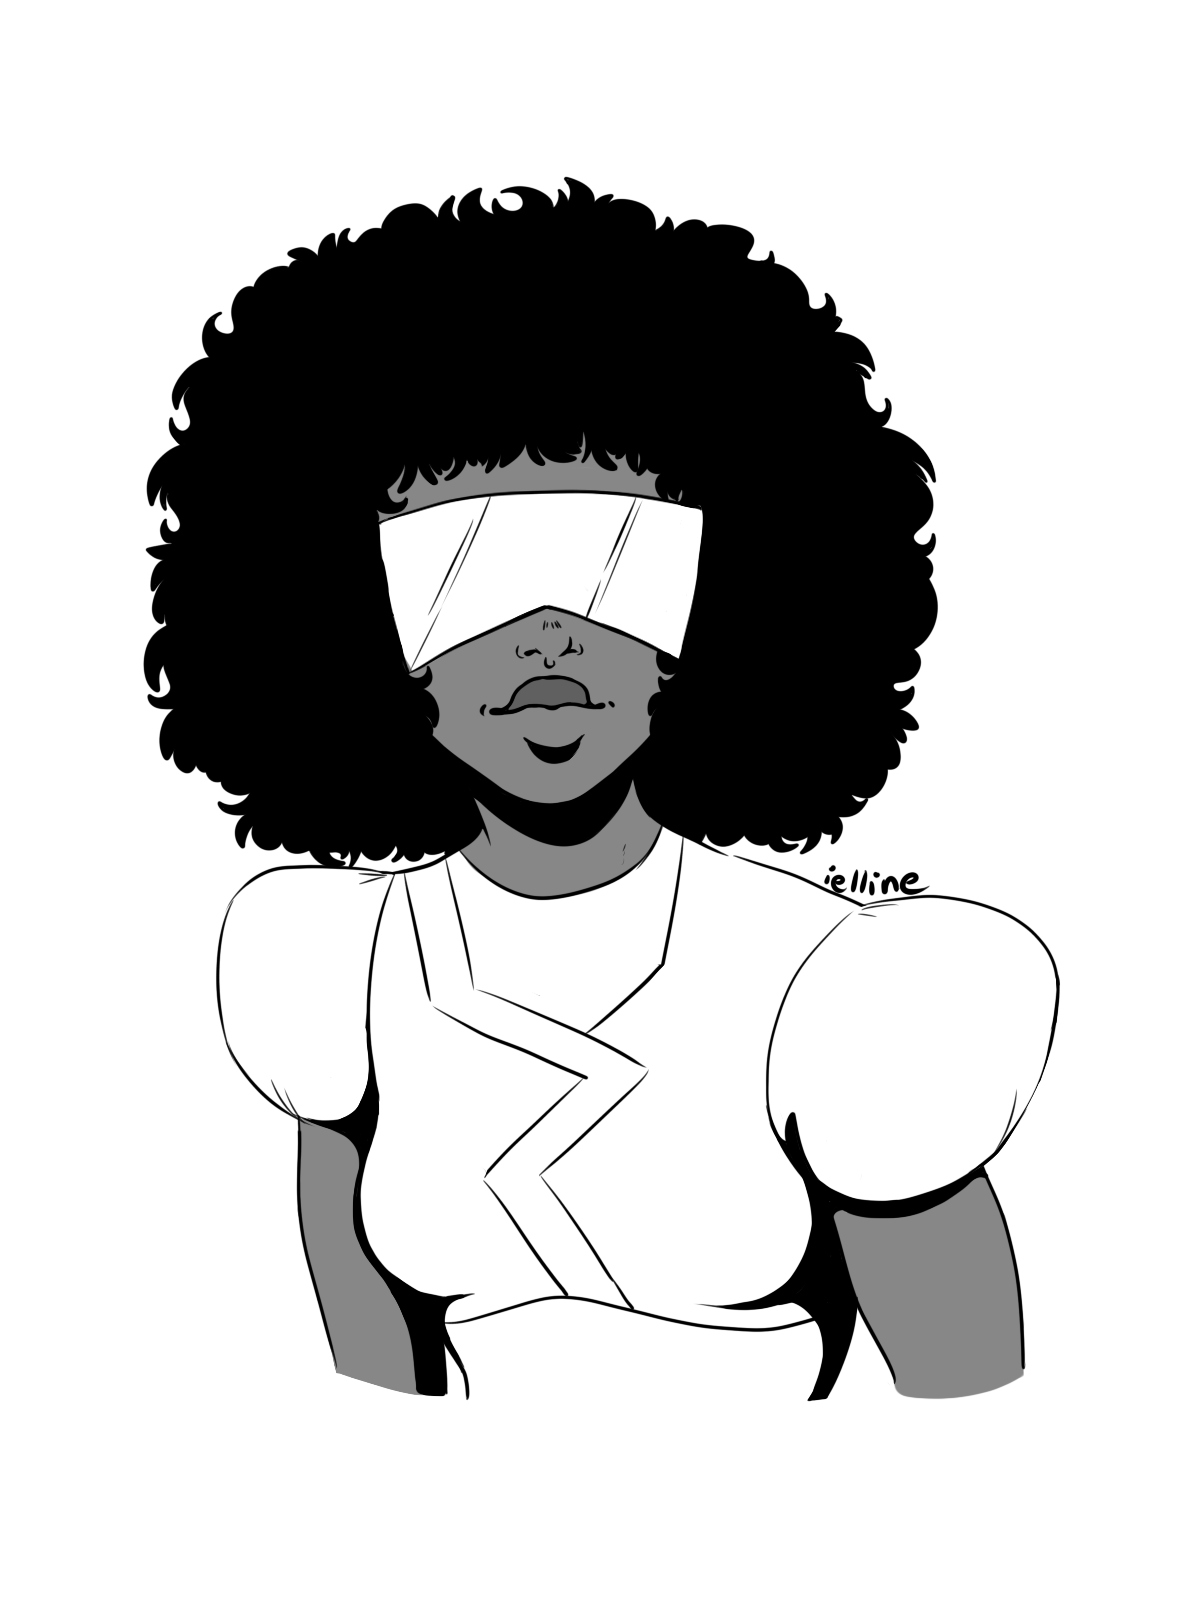 Inktober - Favorites females characters Day 6: Garnet